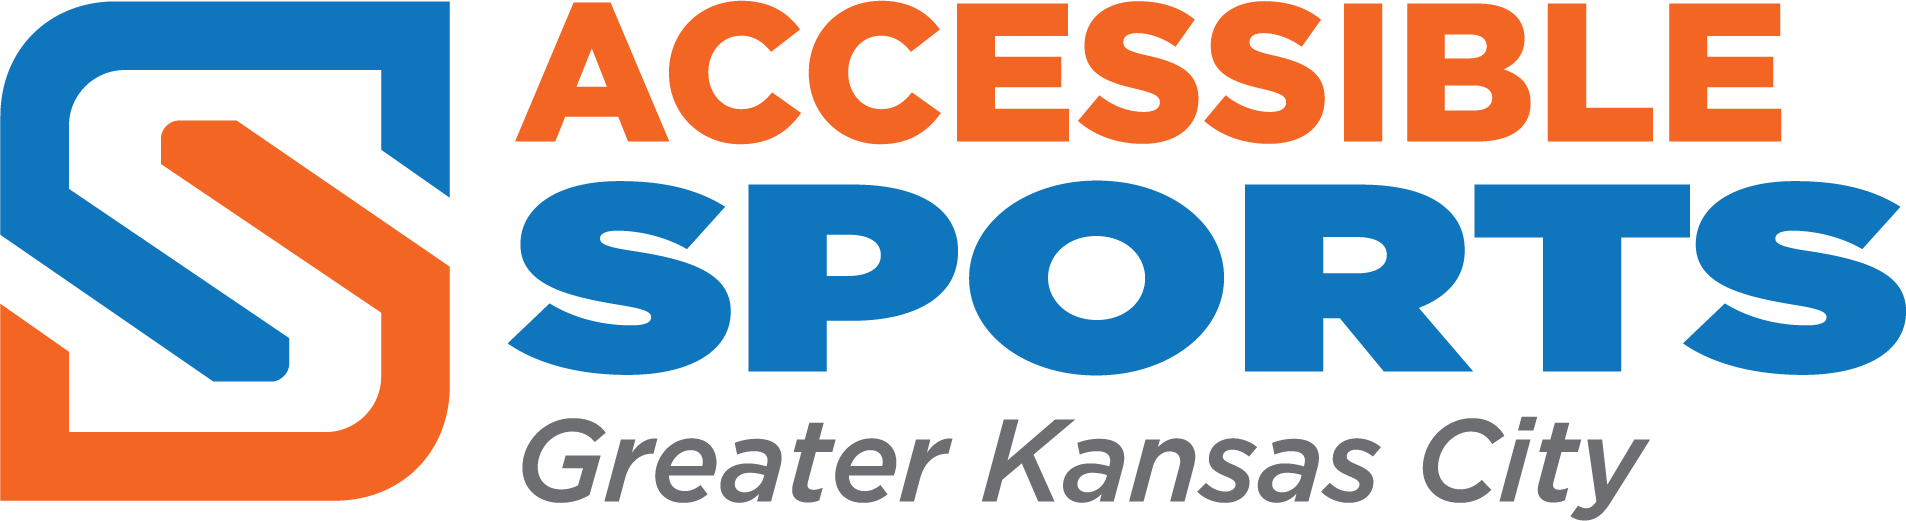 Accessible Sports Regional Roundtable